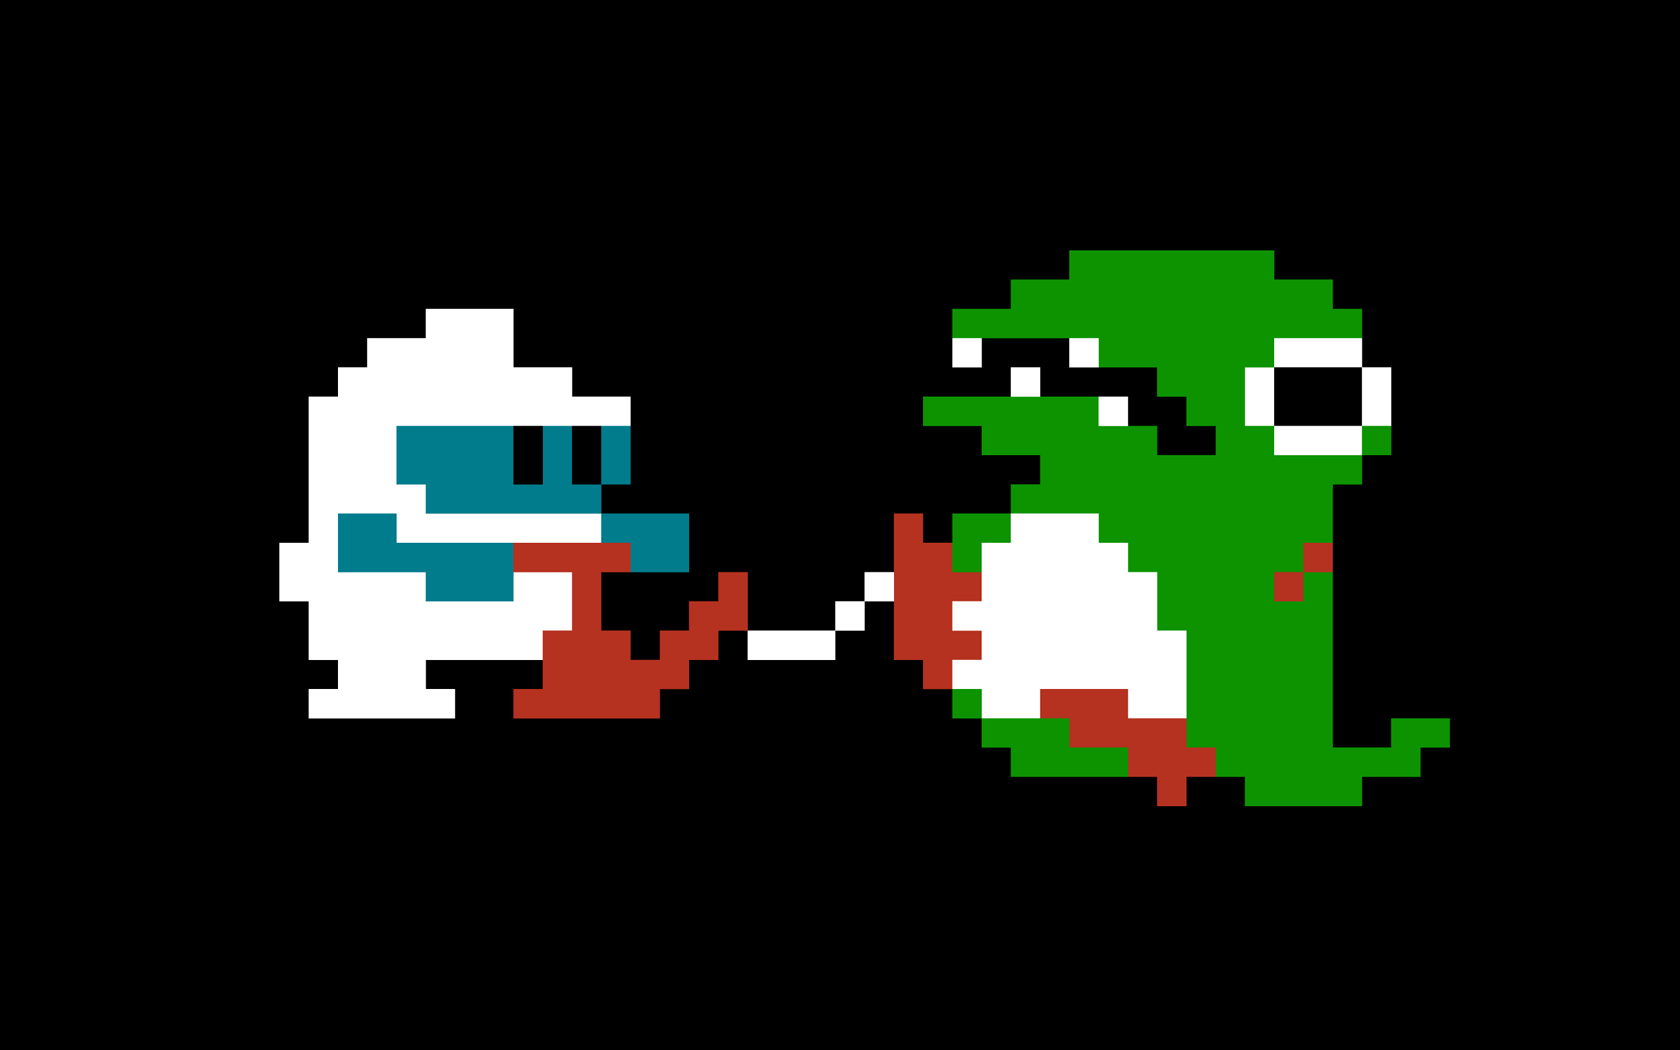 dig dug by any HD Wallpaper